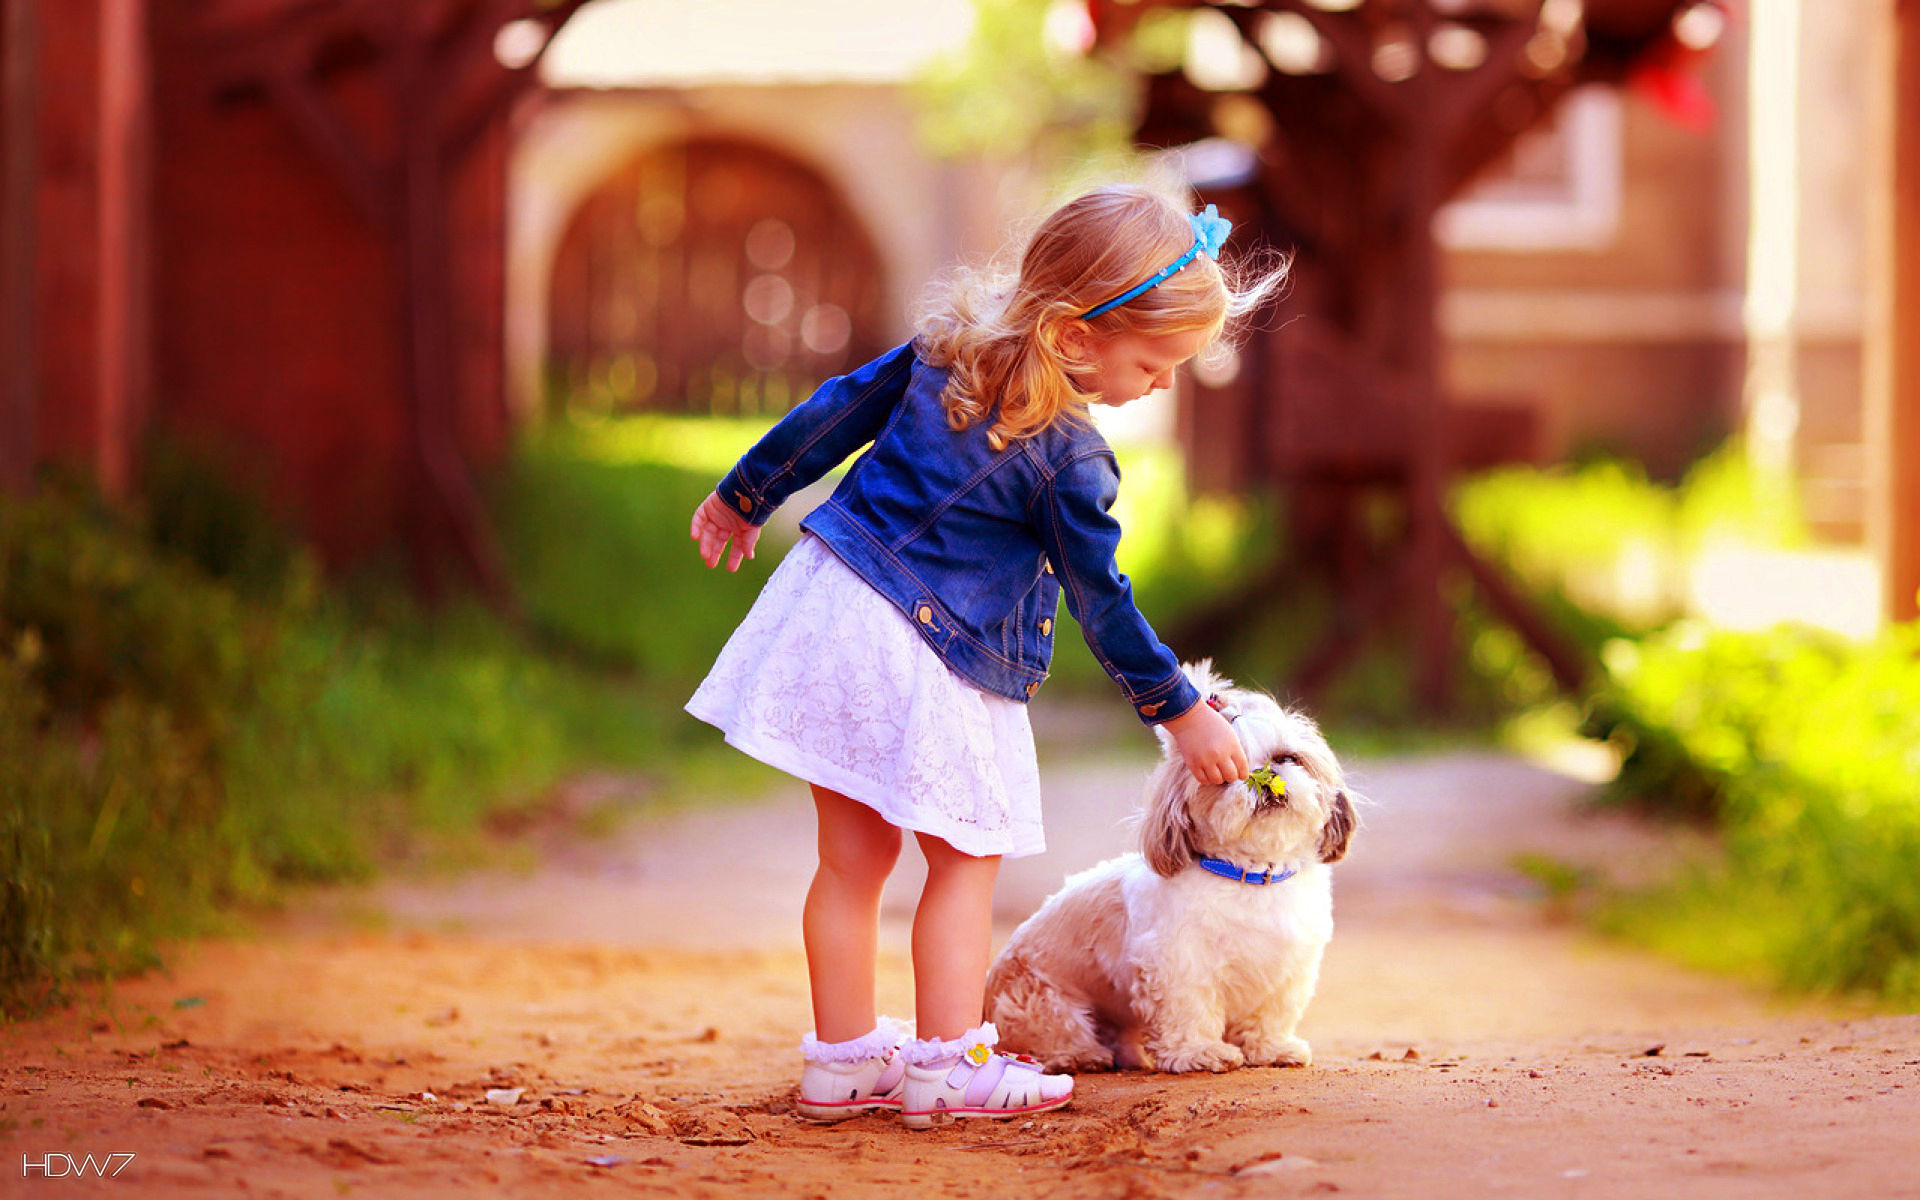 Girl With Cute Dog Friendship Hd Wallpaper Hd Wallpaper Gallery 7